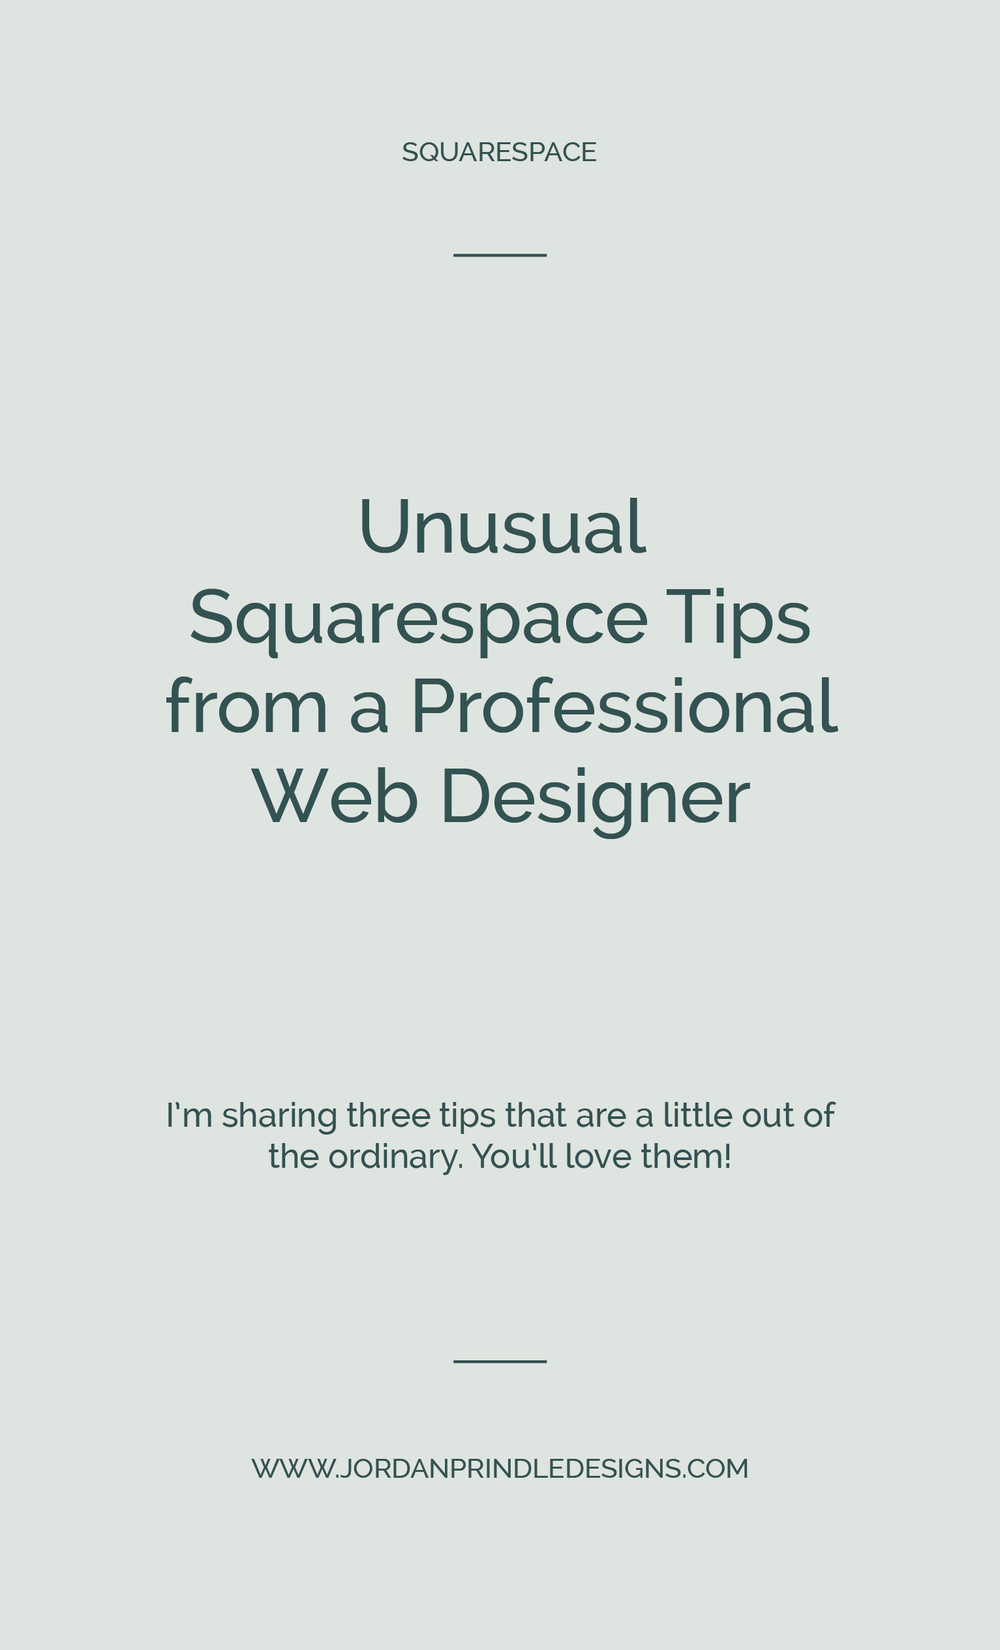 Unusual Squarespace Tips from a Professional Web Designer | I'm sharing three unique tips that have helped me create truly custom Squarespace sites. Read my tips at www.jordanprindledesigns.com #squarespacetips #squarespacedesign #squarespacetutorials